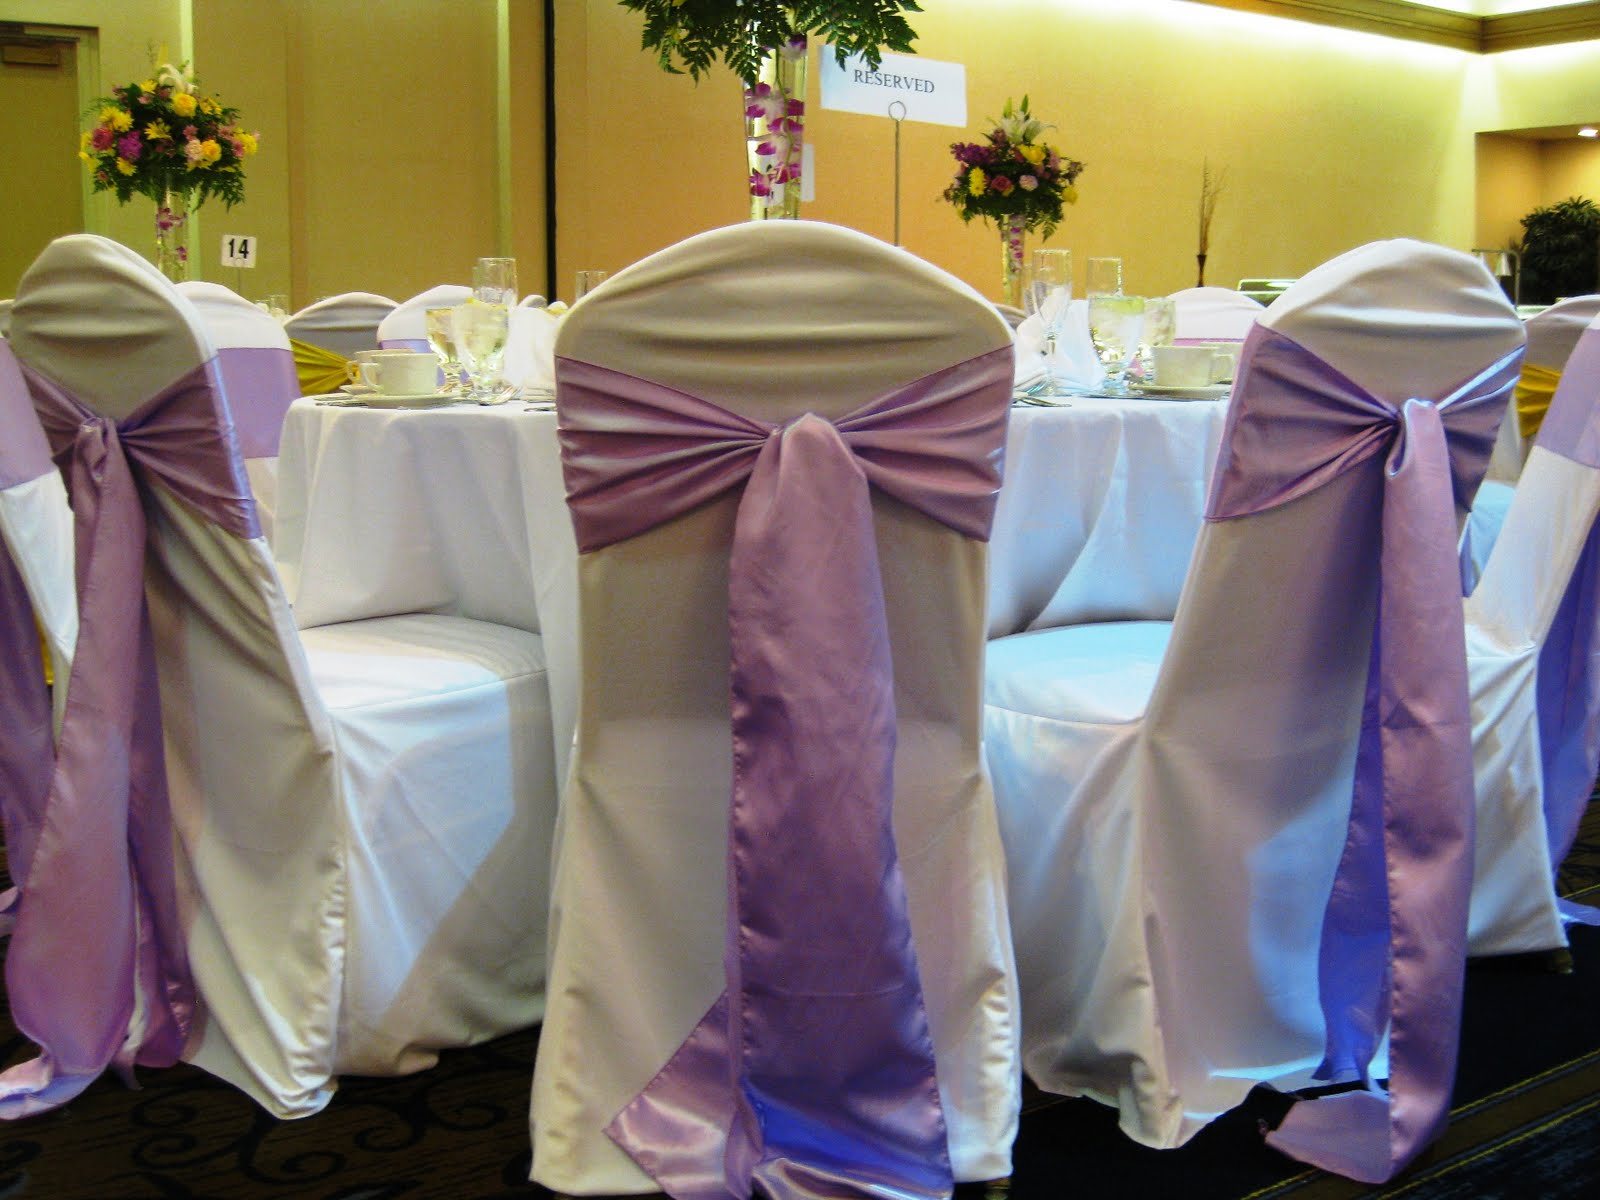 Orange County Wedding Chair Covers Rental Sash colors